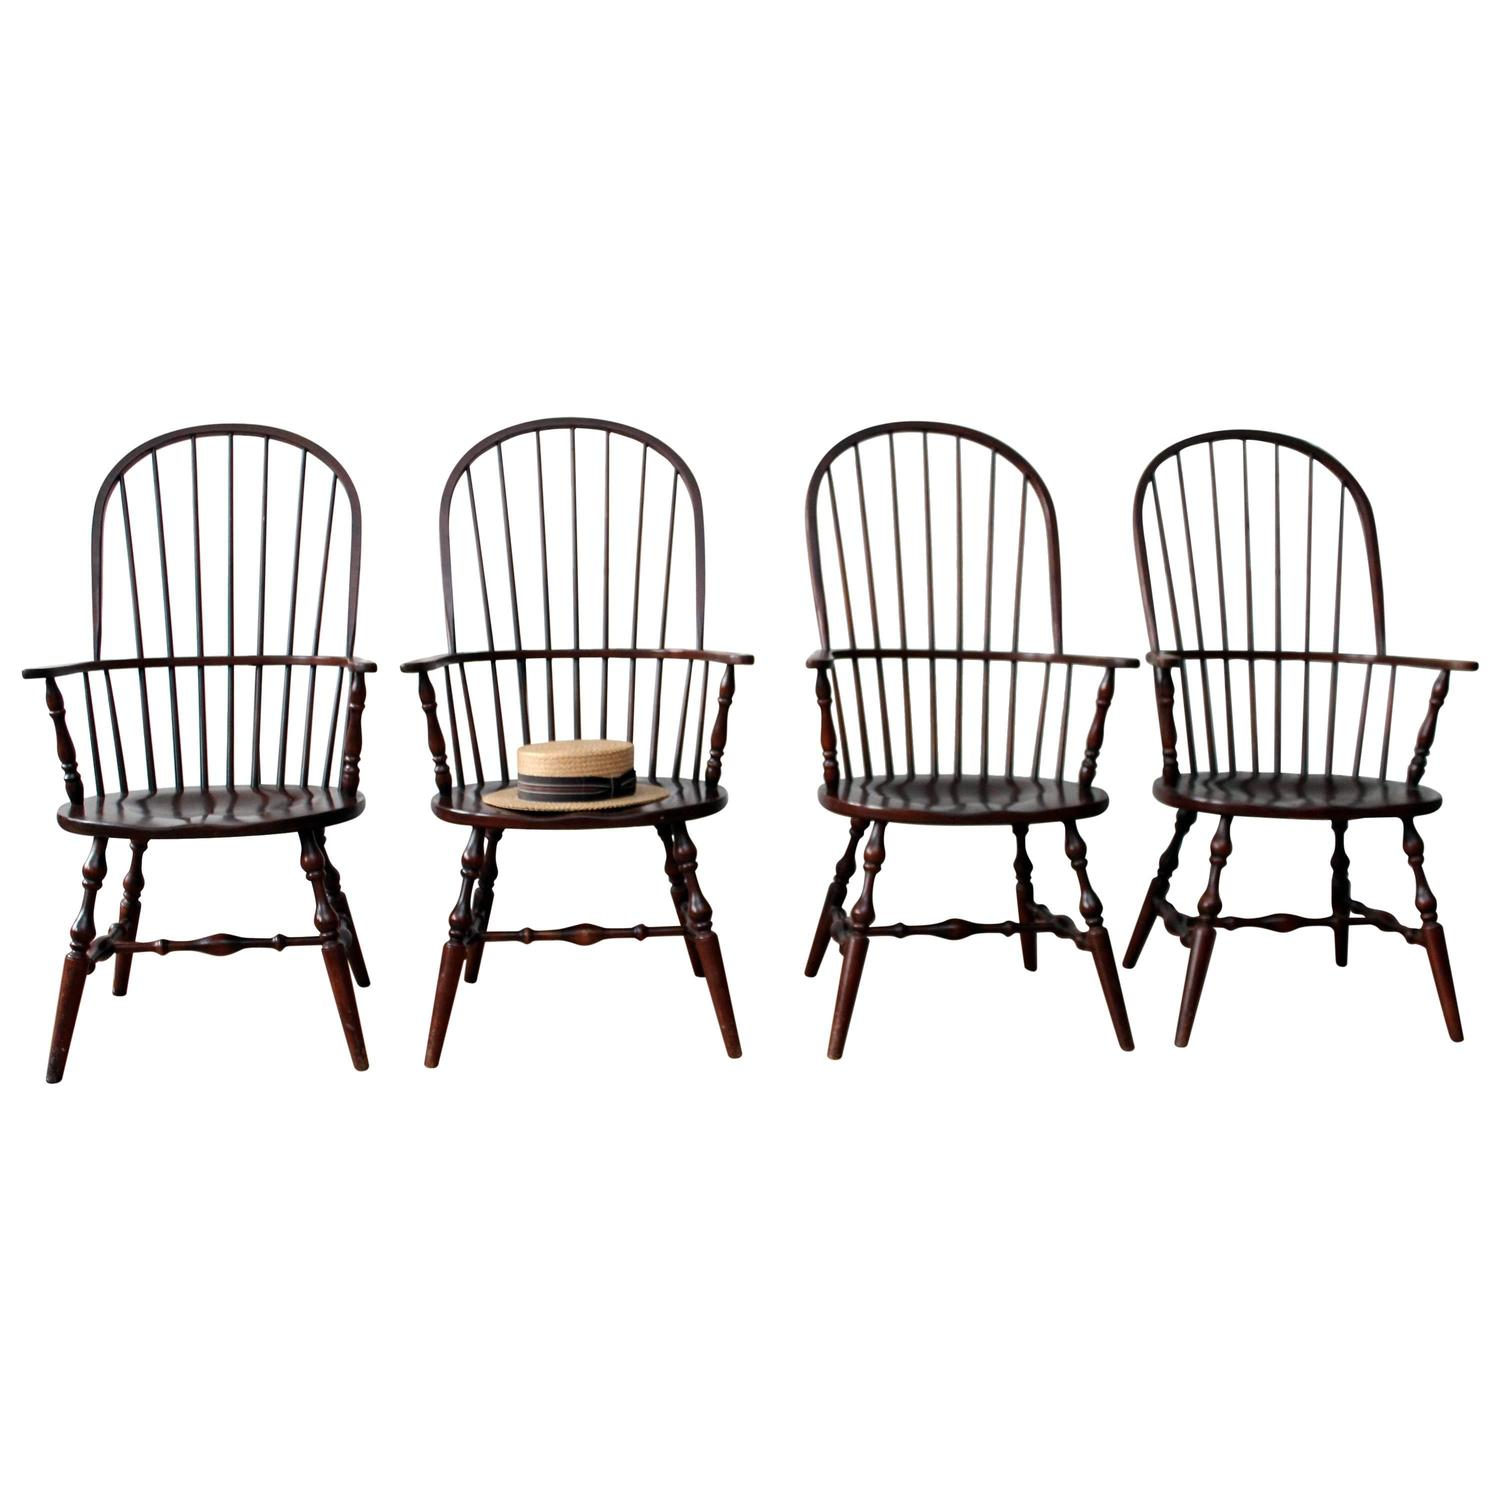 Habersham Sack Back Windsor Chairs